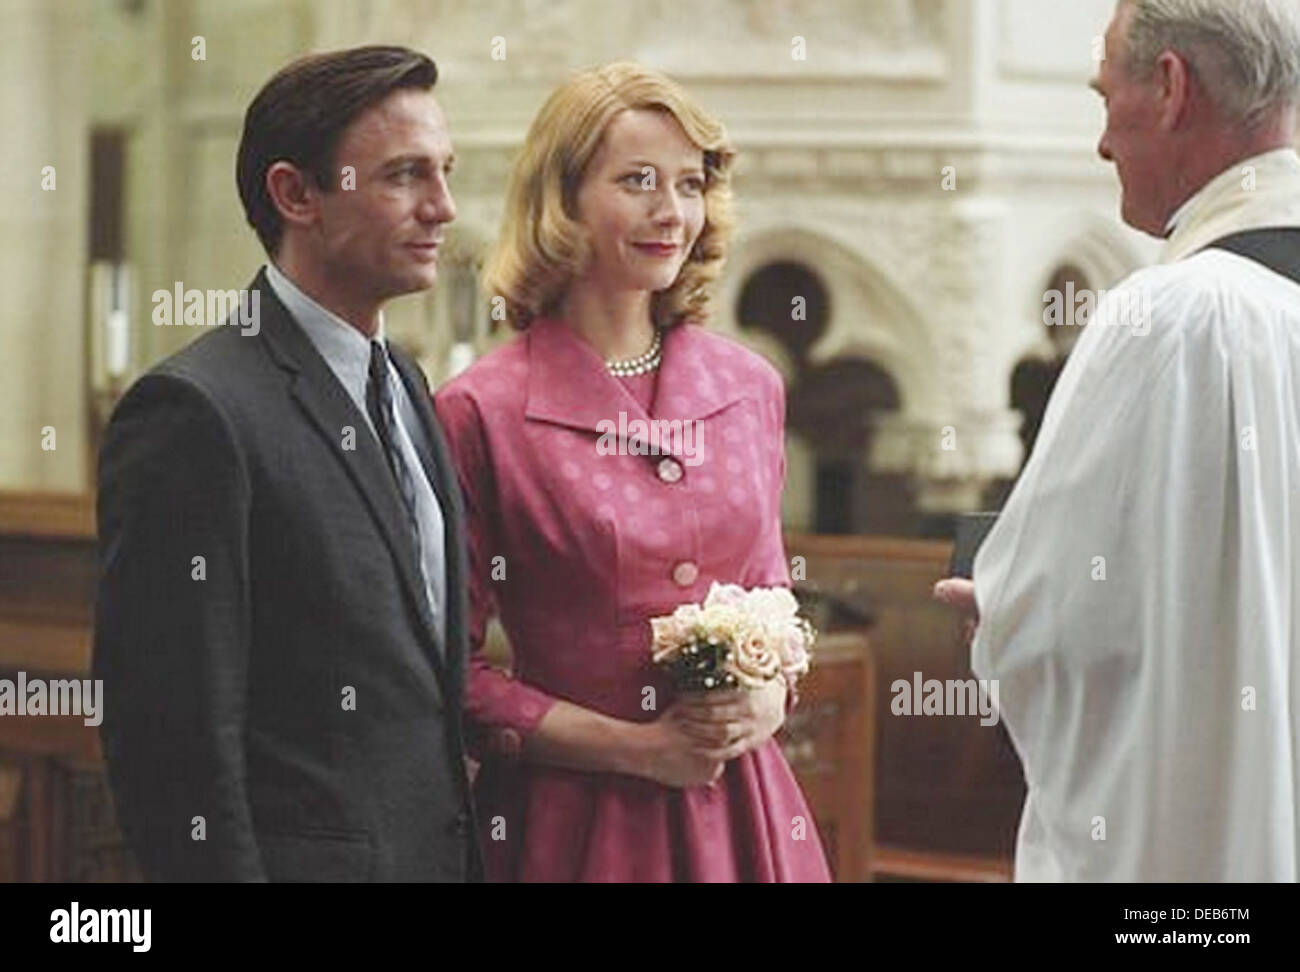 Sylvia 2003 Focus Features Film With Gwyneth Paltrow As